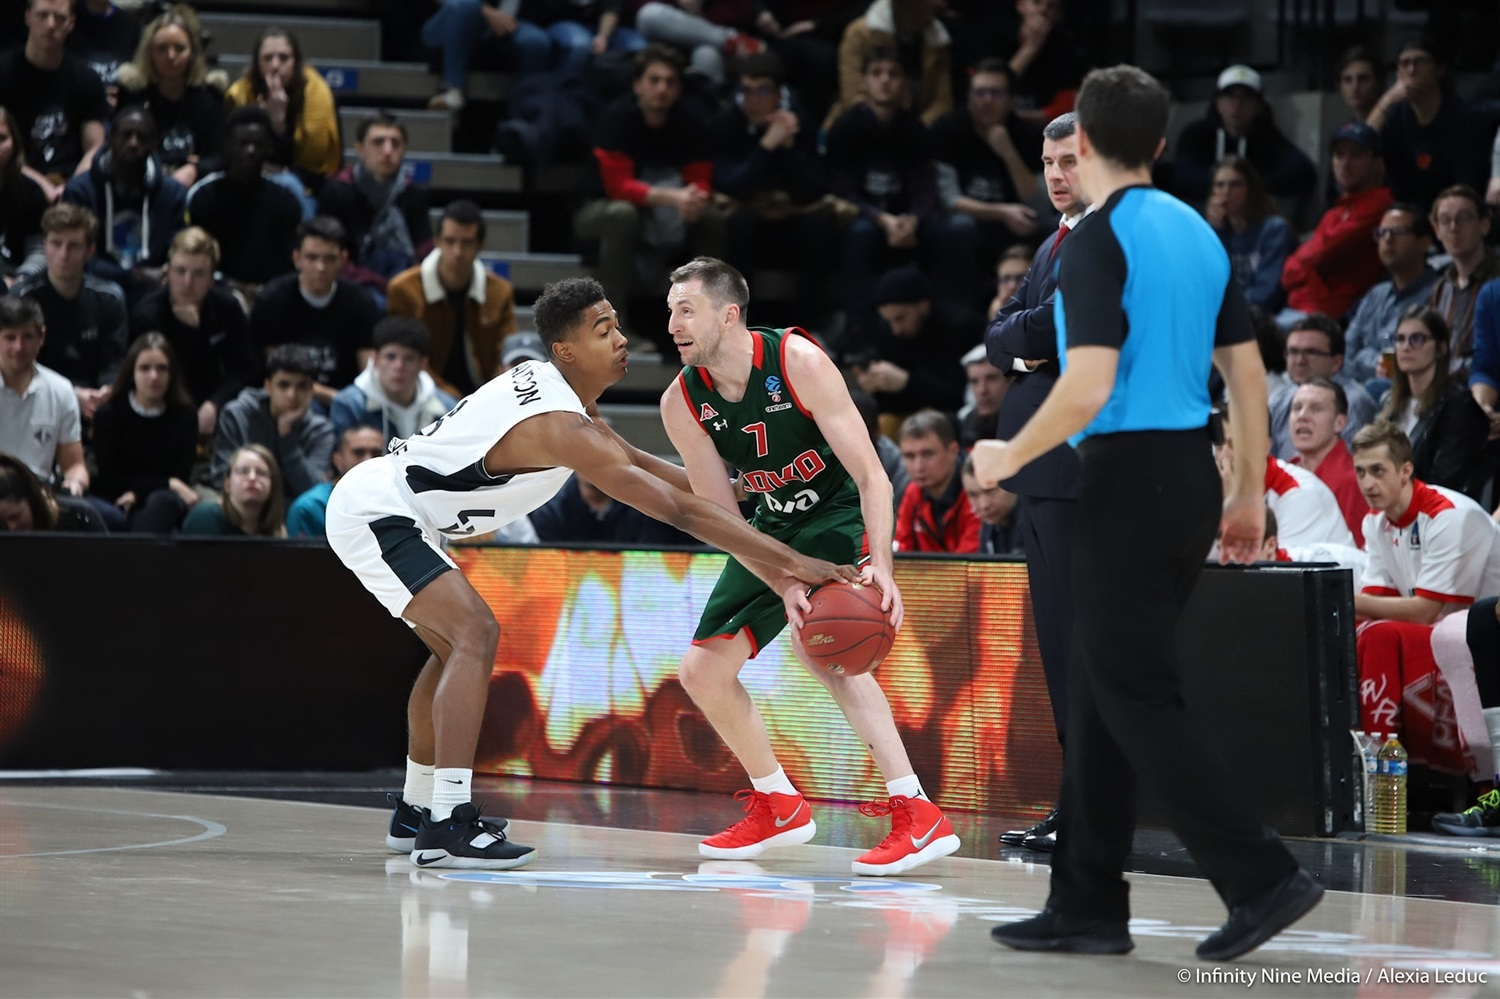 Vitaly Fridzon - Lokomotiv Kuban Krasnodar (photo Infinity Nine Media - Alexia Leduc) - EC18